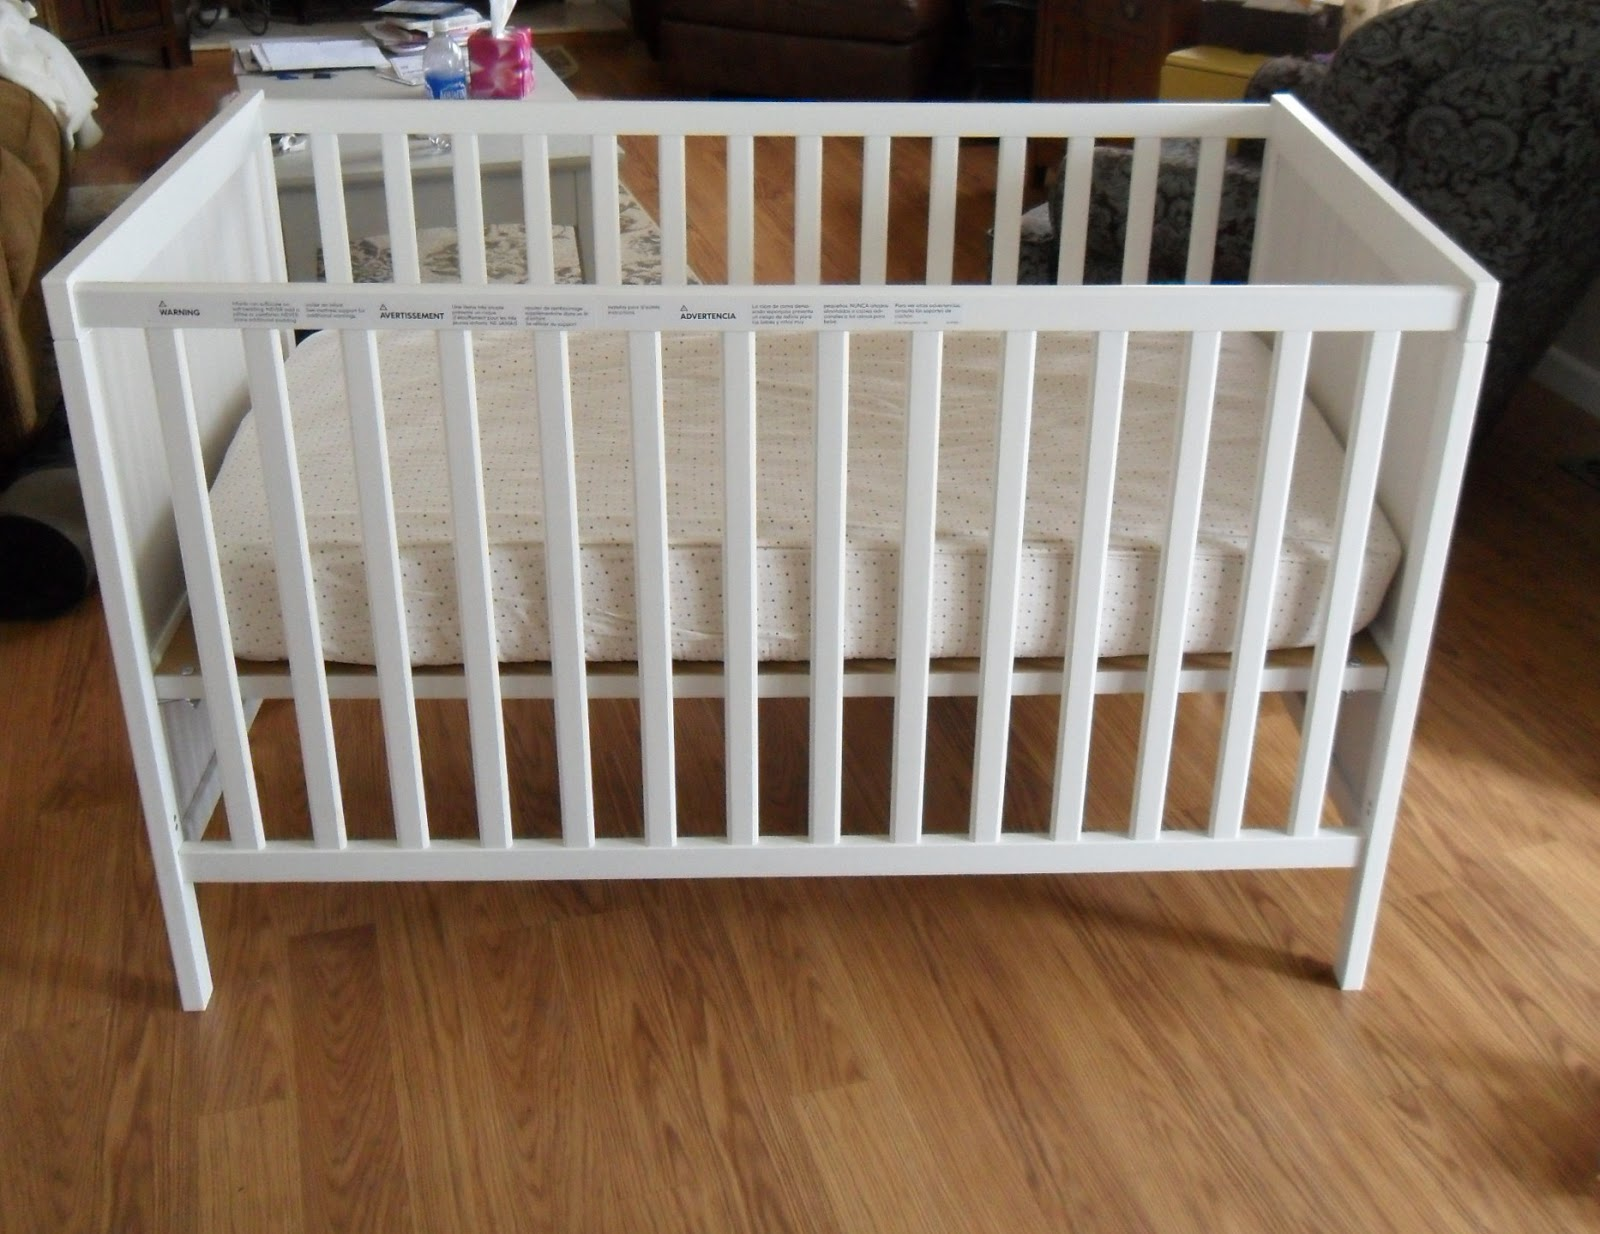 white cribs baby french pin on in annie paint linen nursery is of crib chalk for the country vintage rustic old clear with back painted safe wax dark sloan